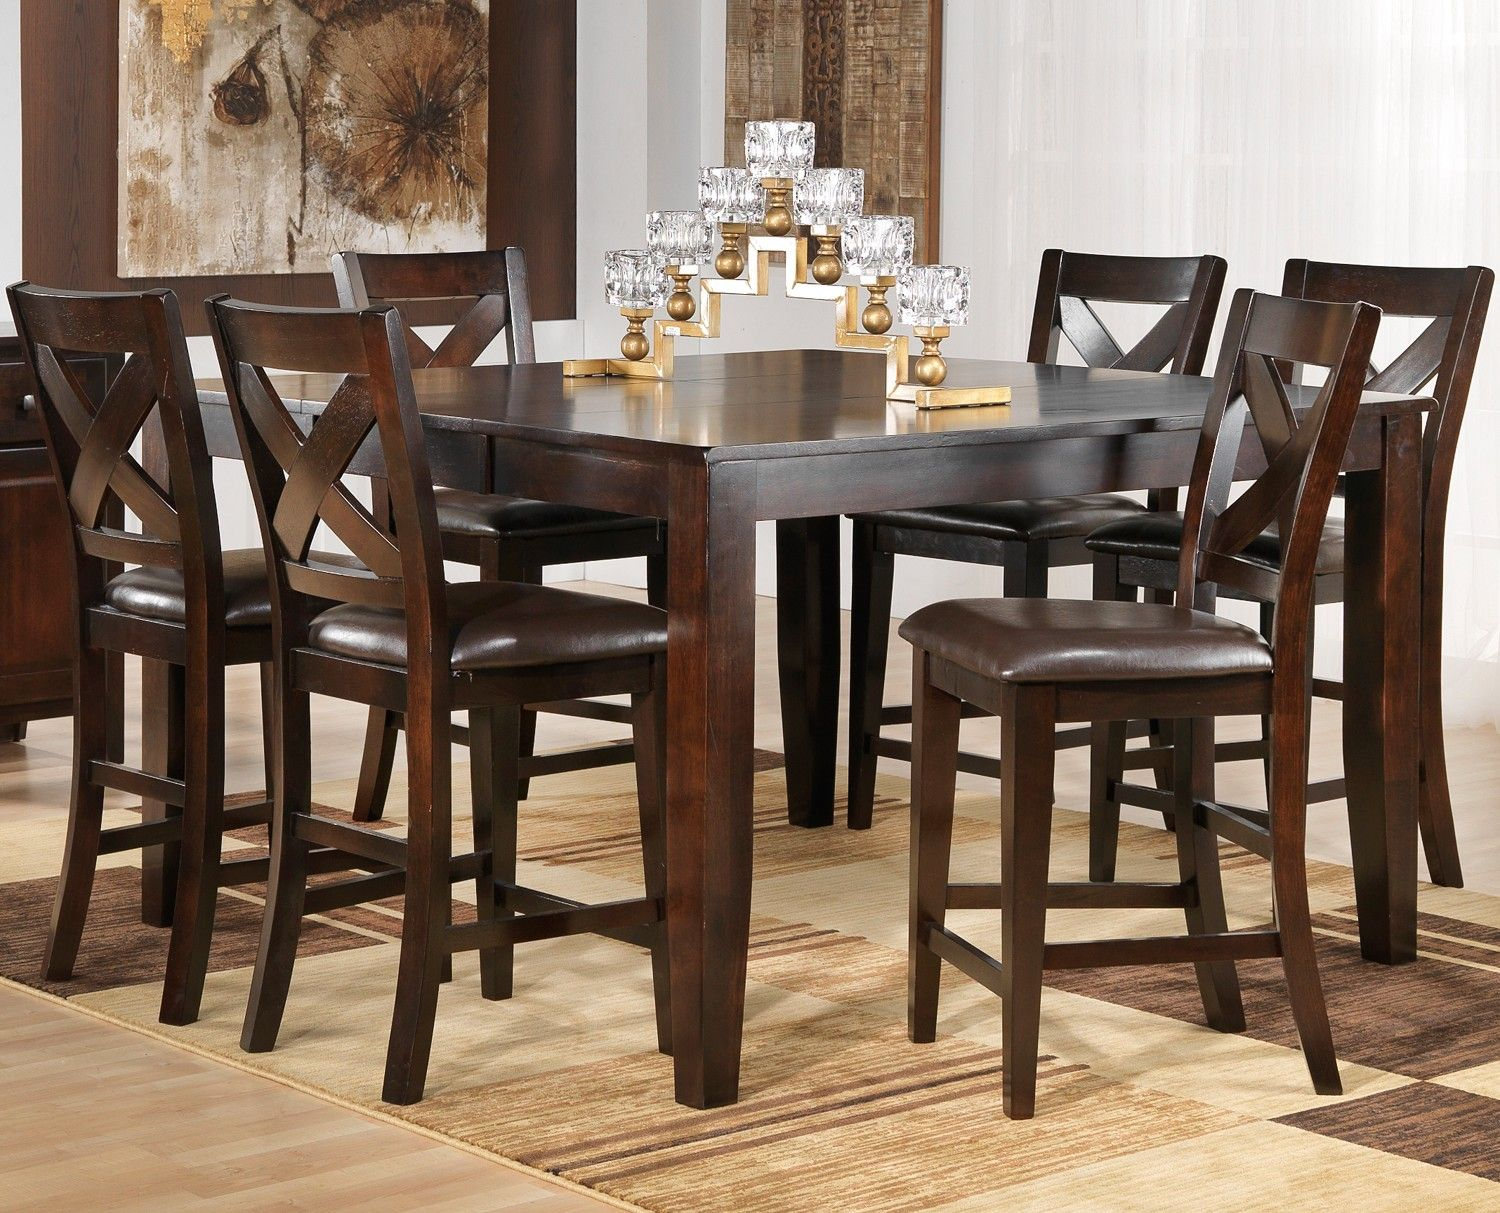 Soho II Dining Room 7 Pc Pub Set